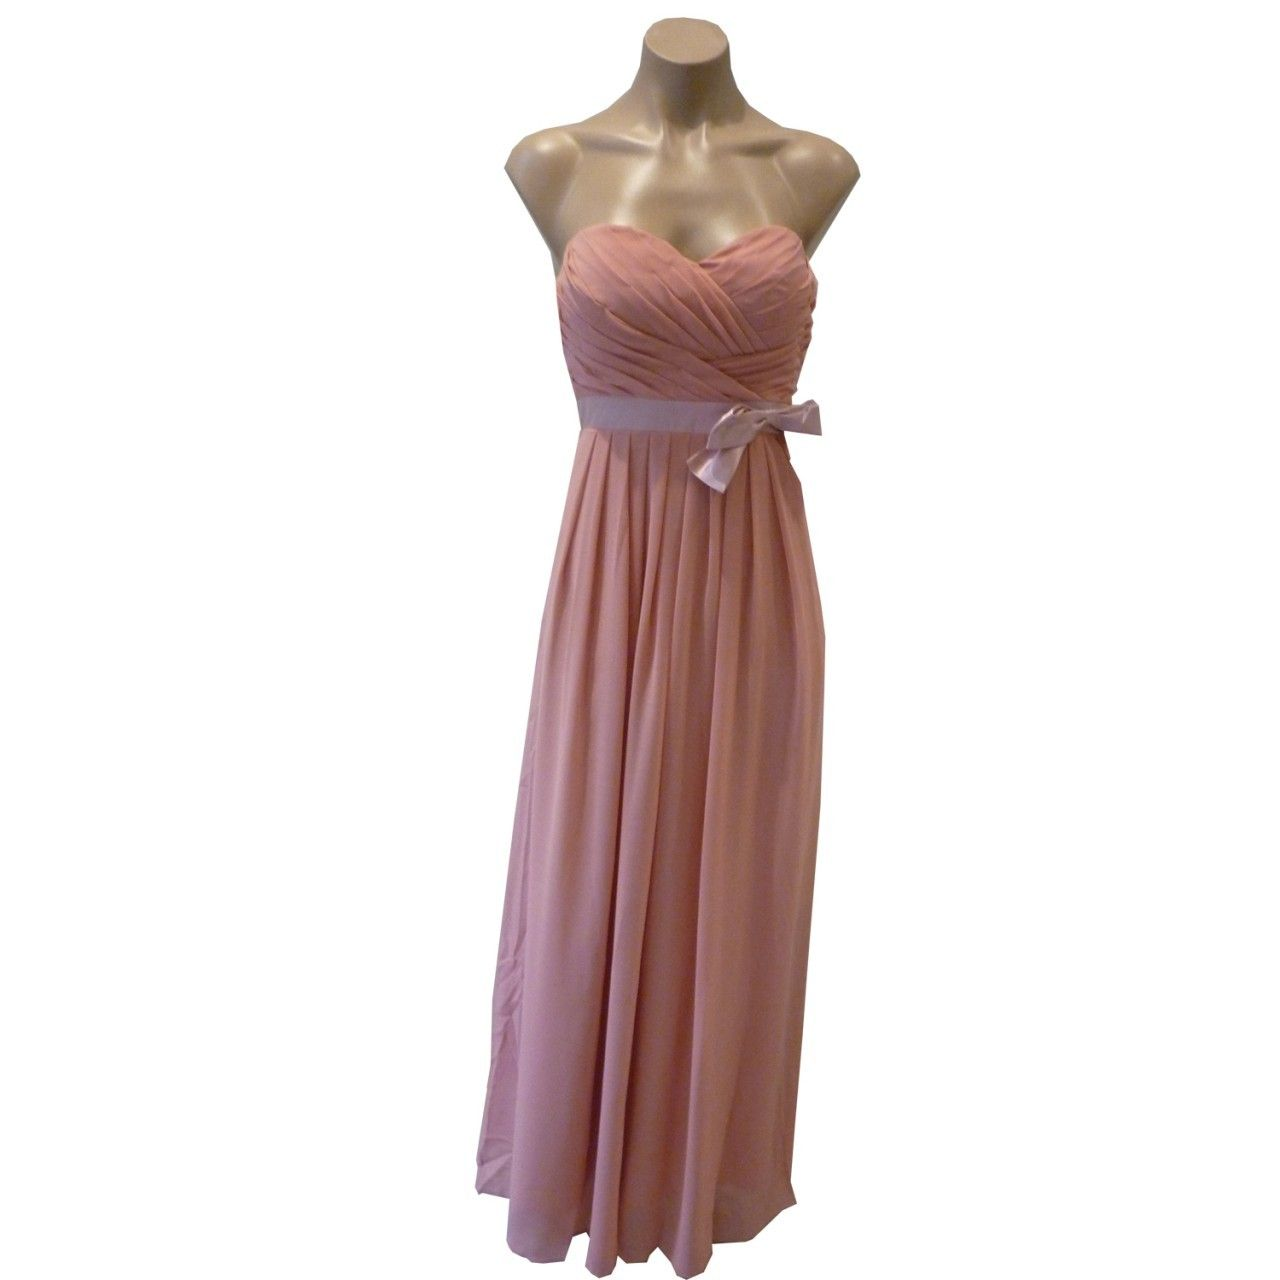 Fashionably yours evangeline dusty pink sweet bow bridesmaid fashionably yours evangeline dusty pink sweet bow bridesmaid dress 9995 http ombrellifo Choice Image